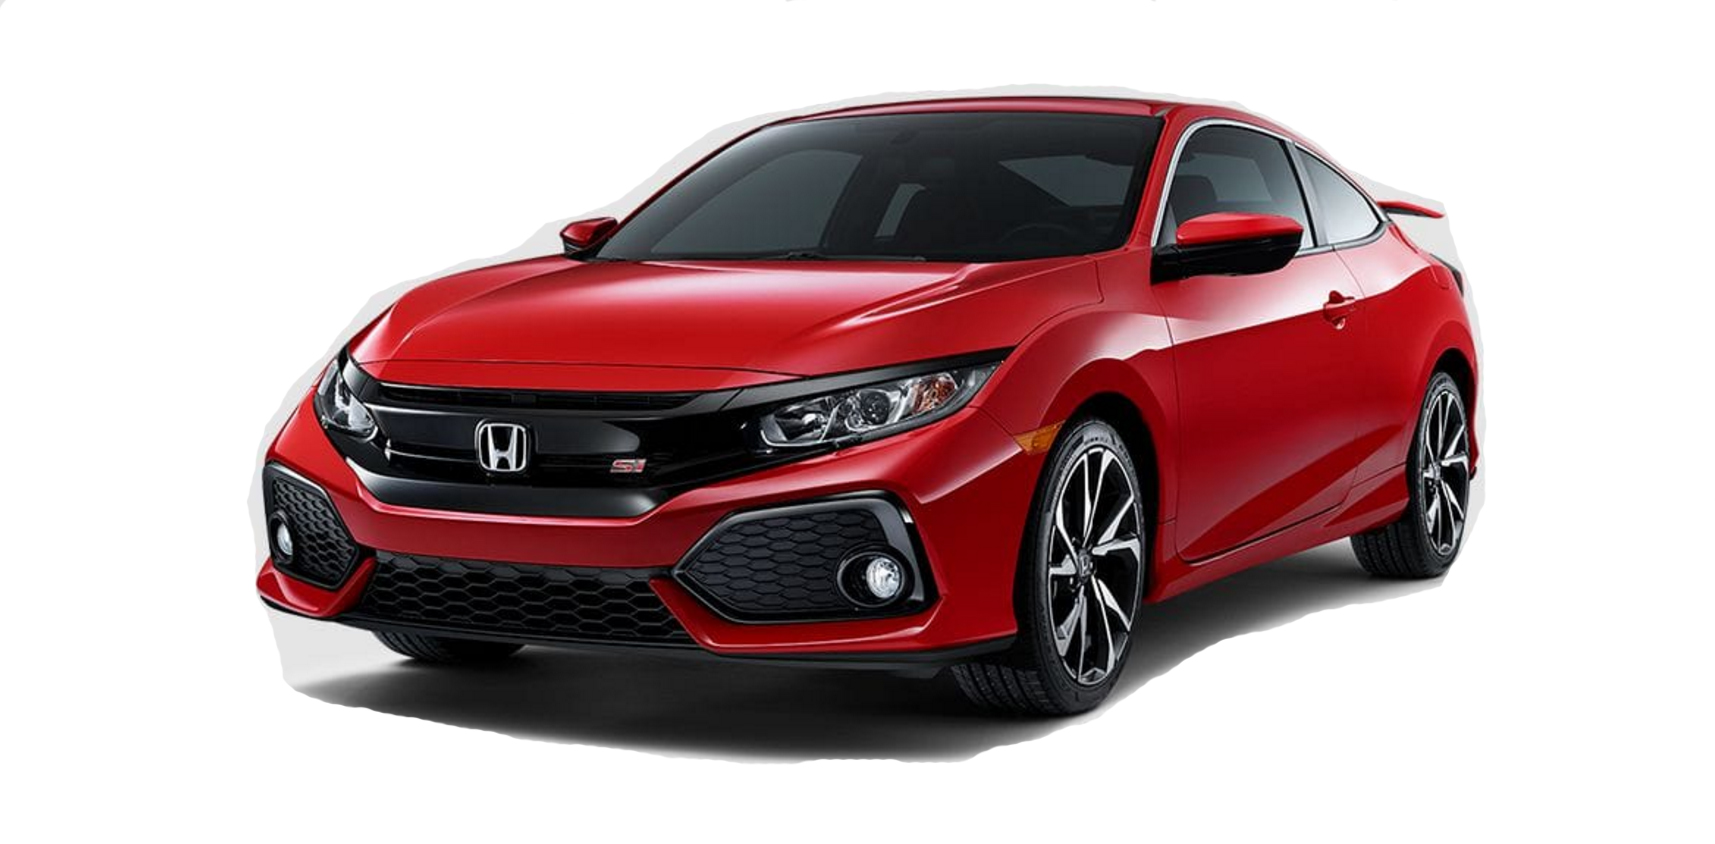 Honda Civic Si Coupe For Sale in Conroe